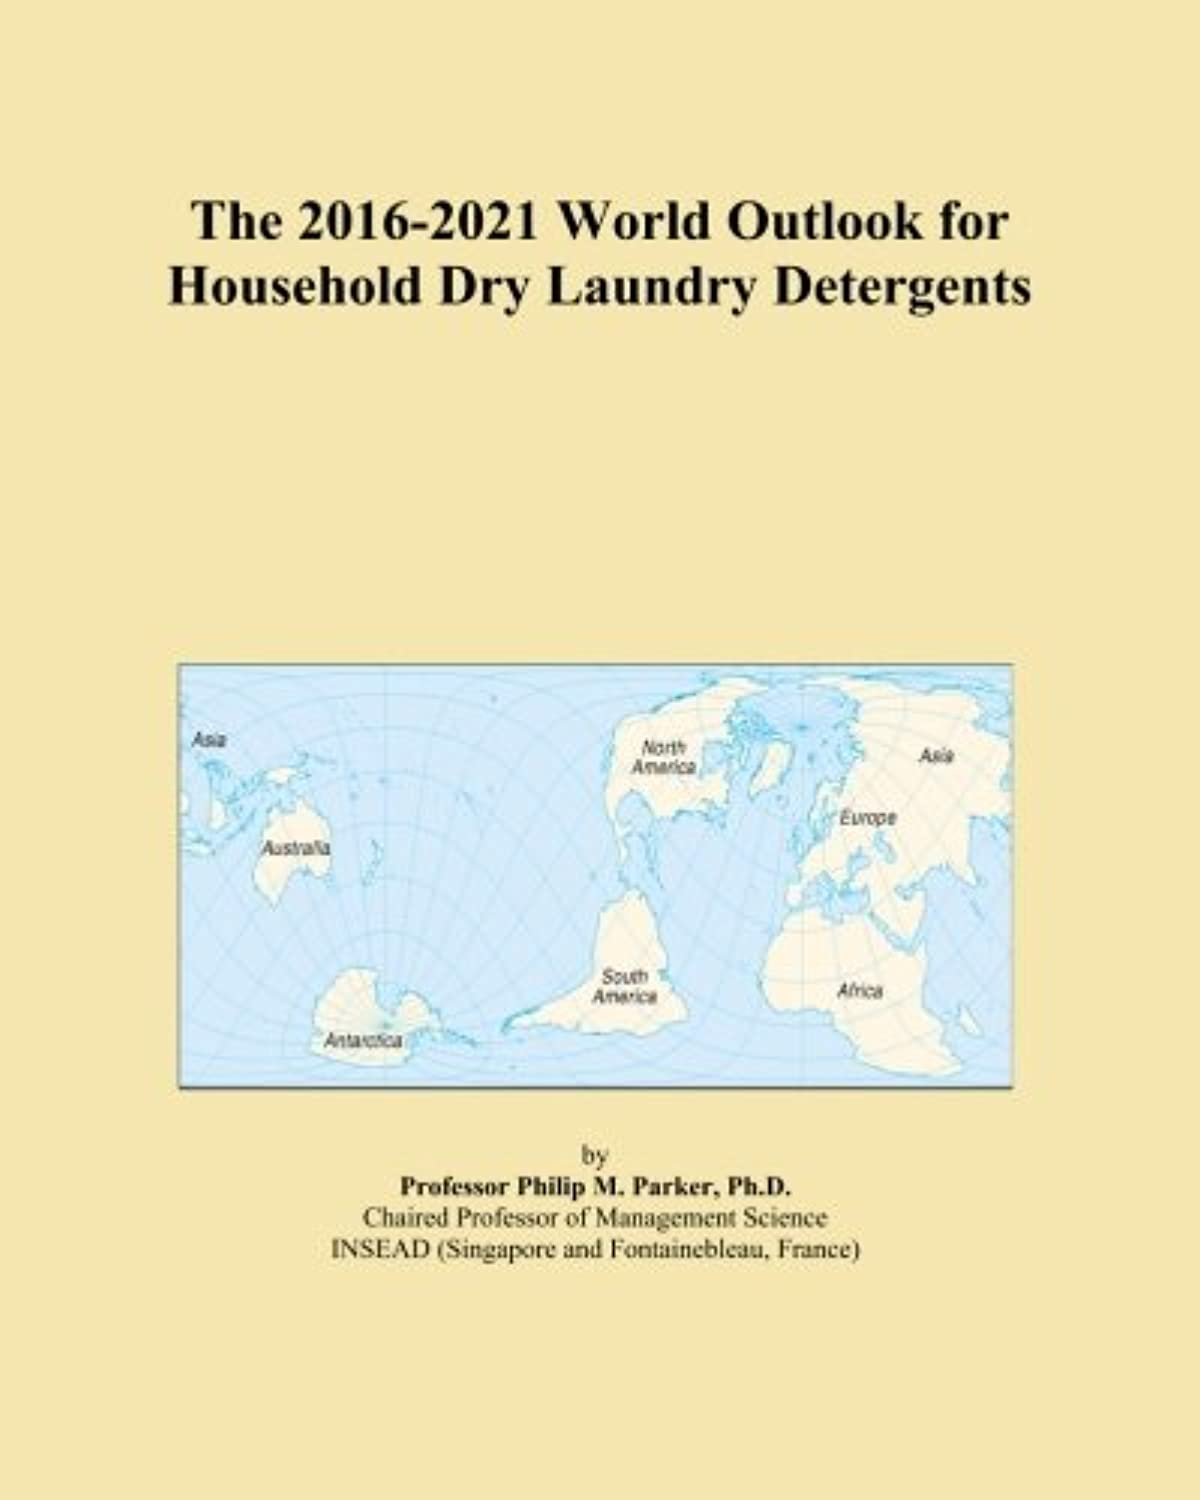 The 2016-2021 World Outlook for Household Dry Laundry Detergents